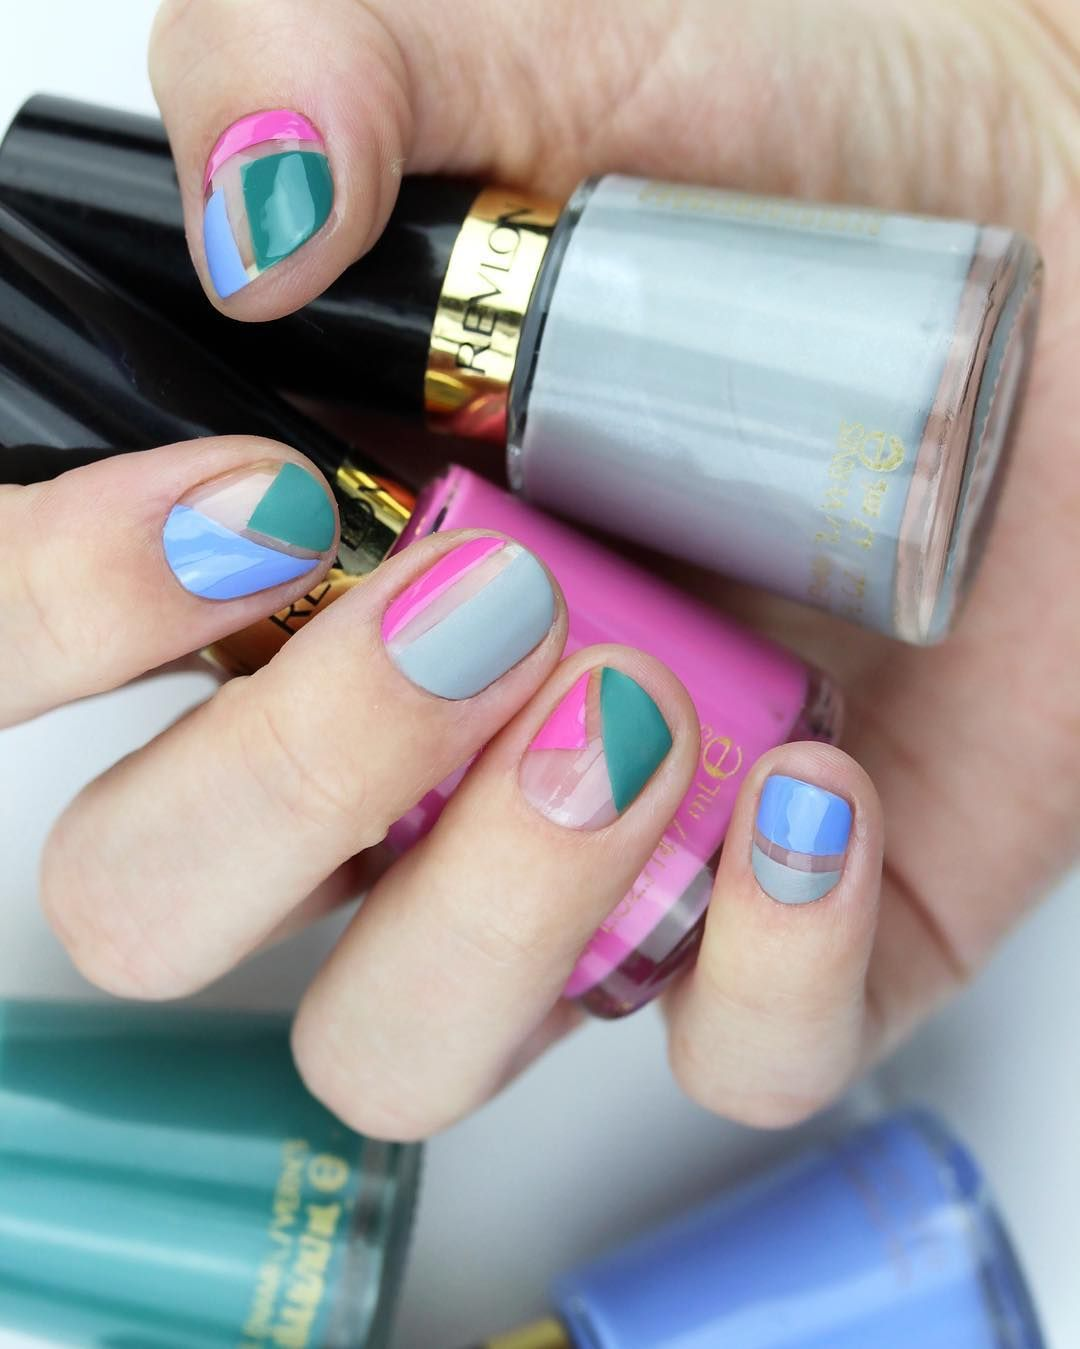 Instagram | Nails | Pinterest | Nail color designs and Acrylic nail ...